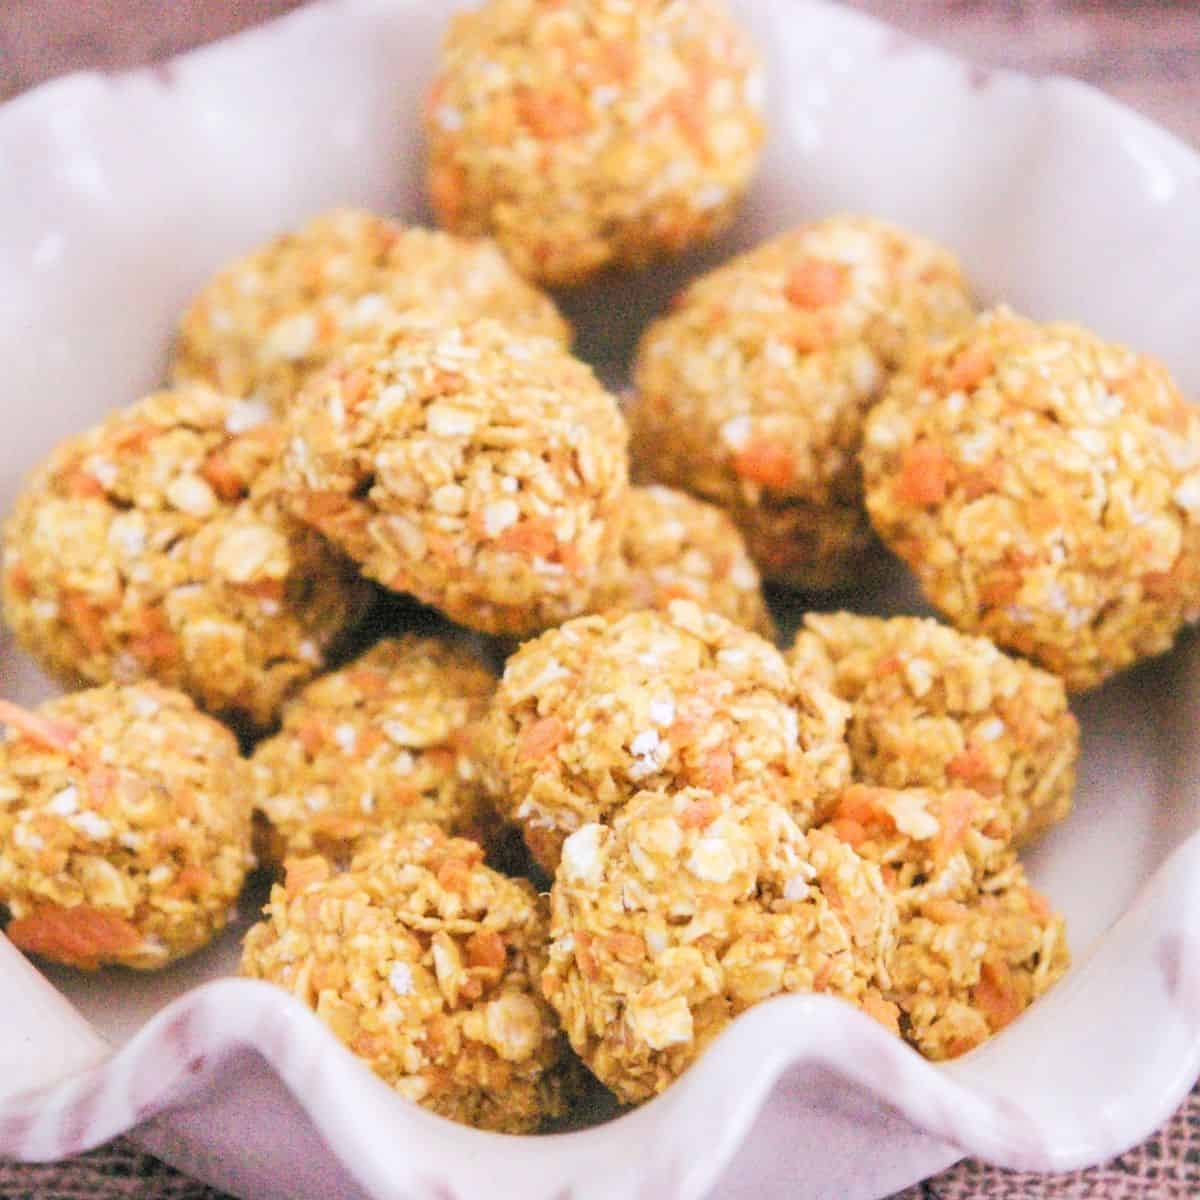 cheese and carrot dog treats